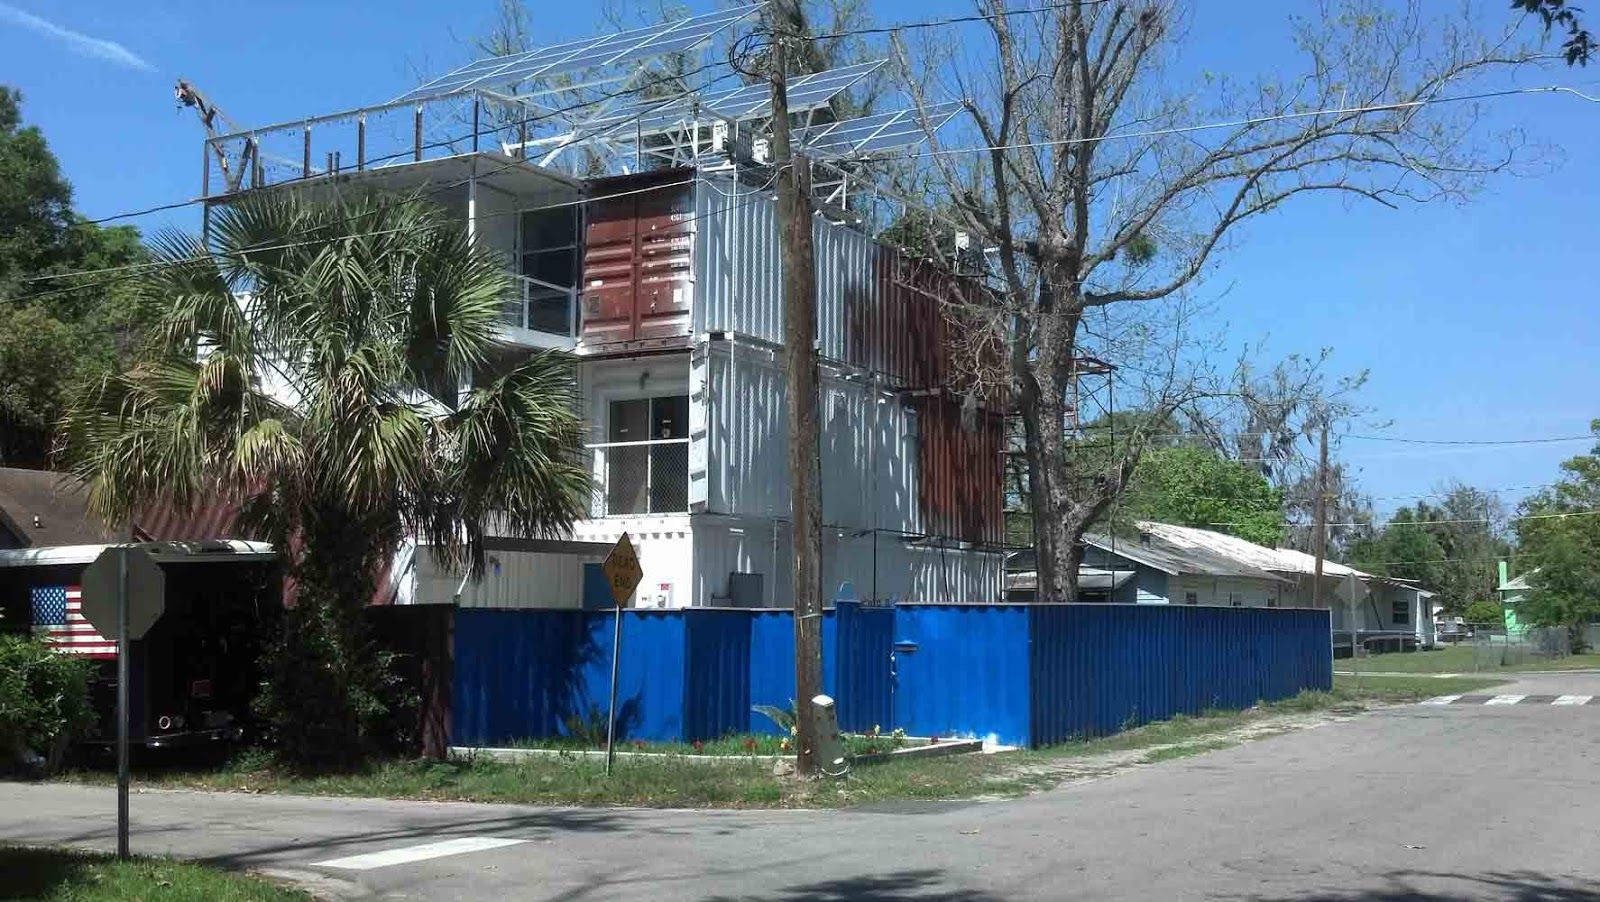 Shipping container homes november 2012 - Container homes florida ...